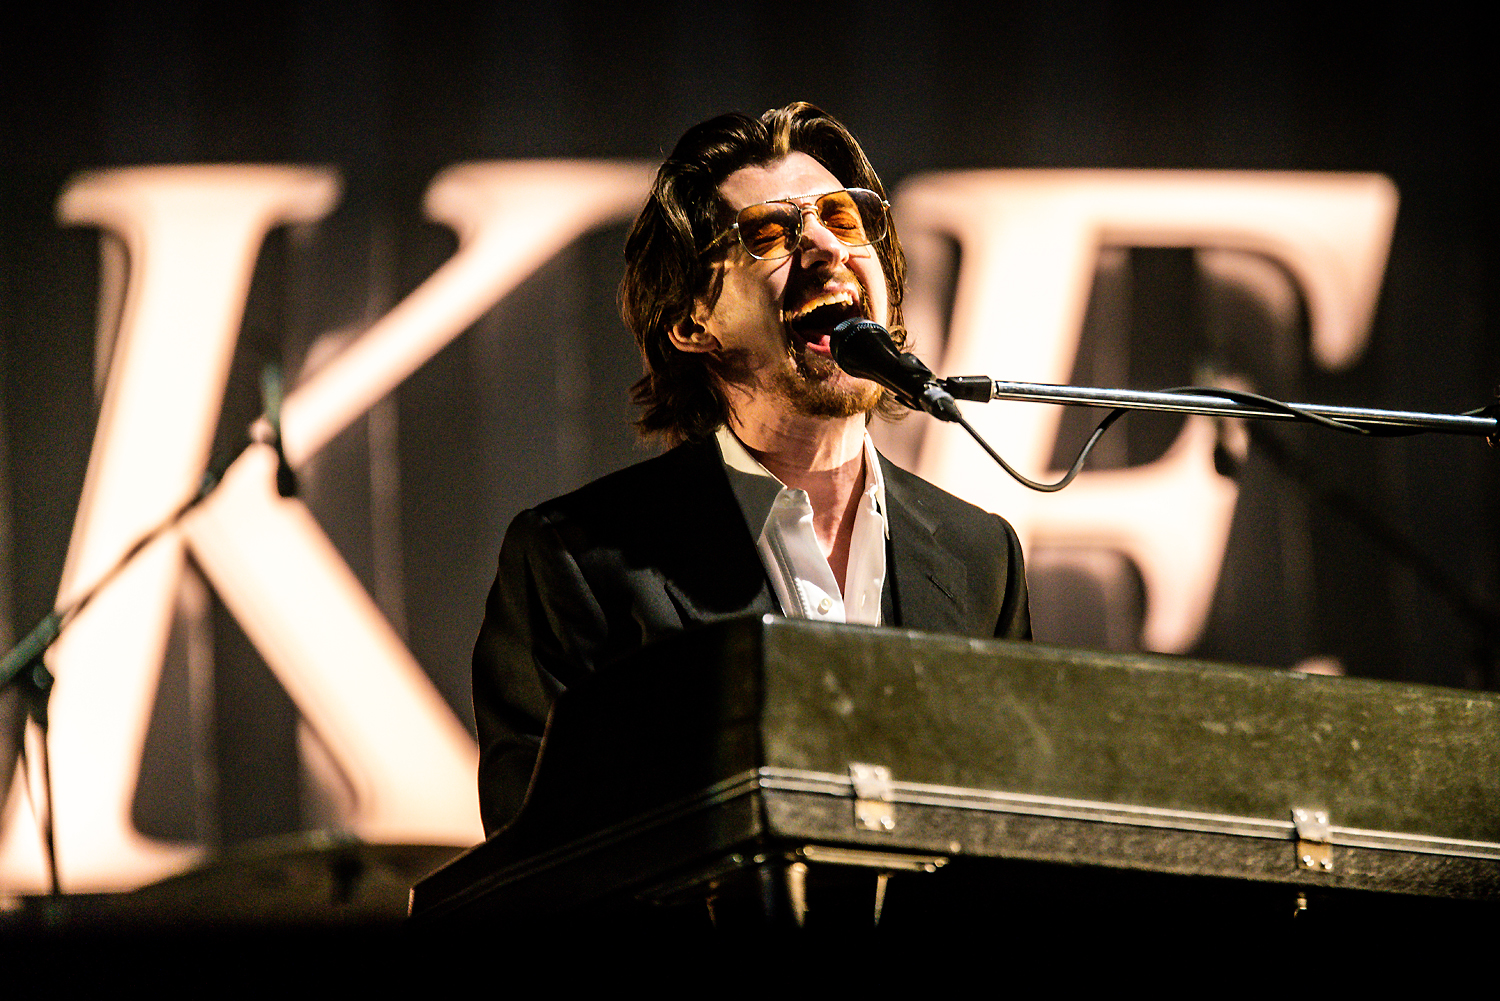 Arctic Monkeys @ Best Kept Secret 2018 (Jan Van den Bulck)